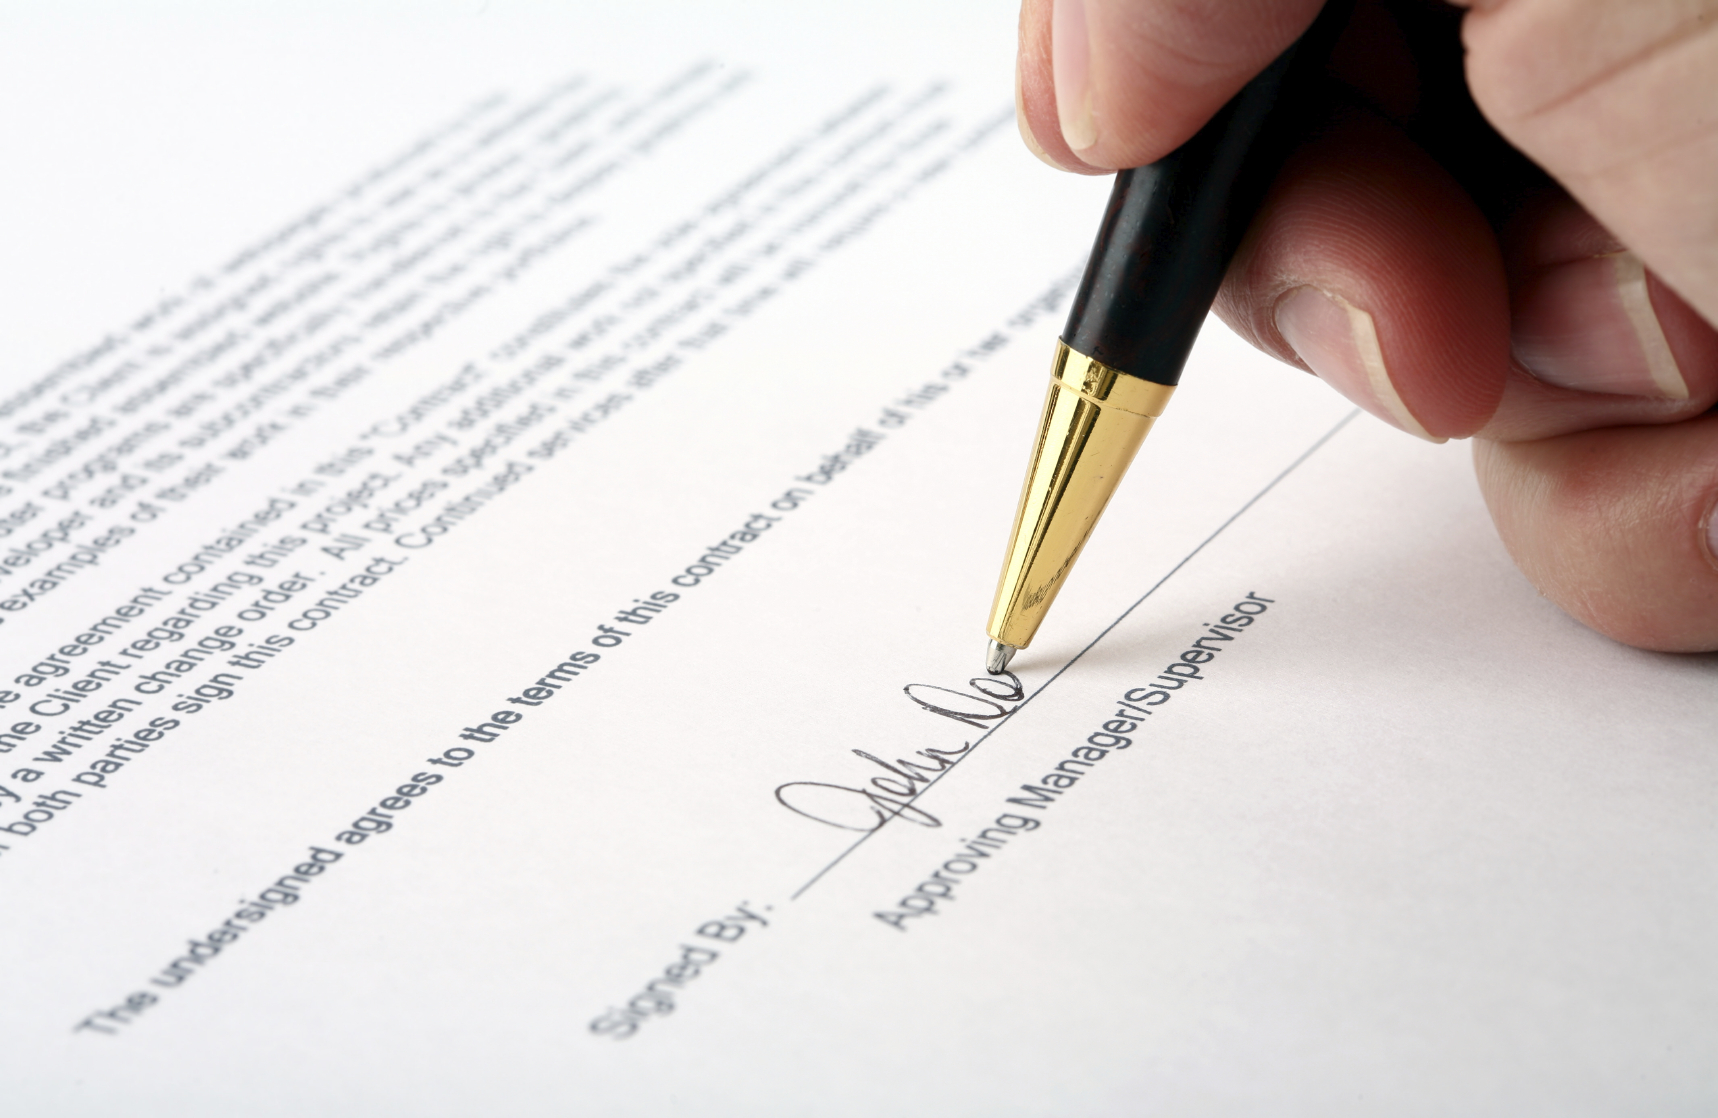 Notarized statement enough for child support? - Divorce Lawyer Clinton Twp